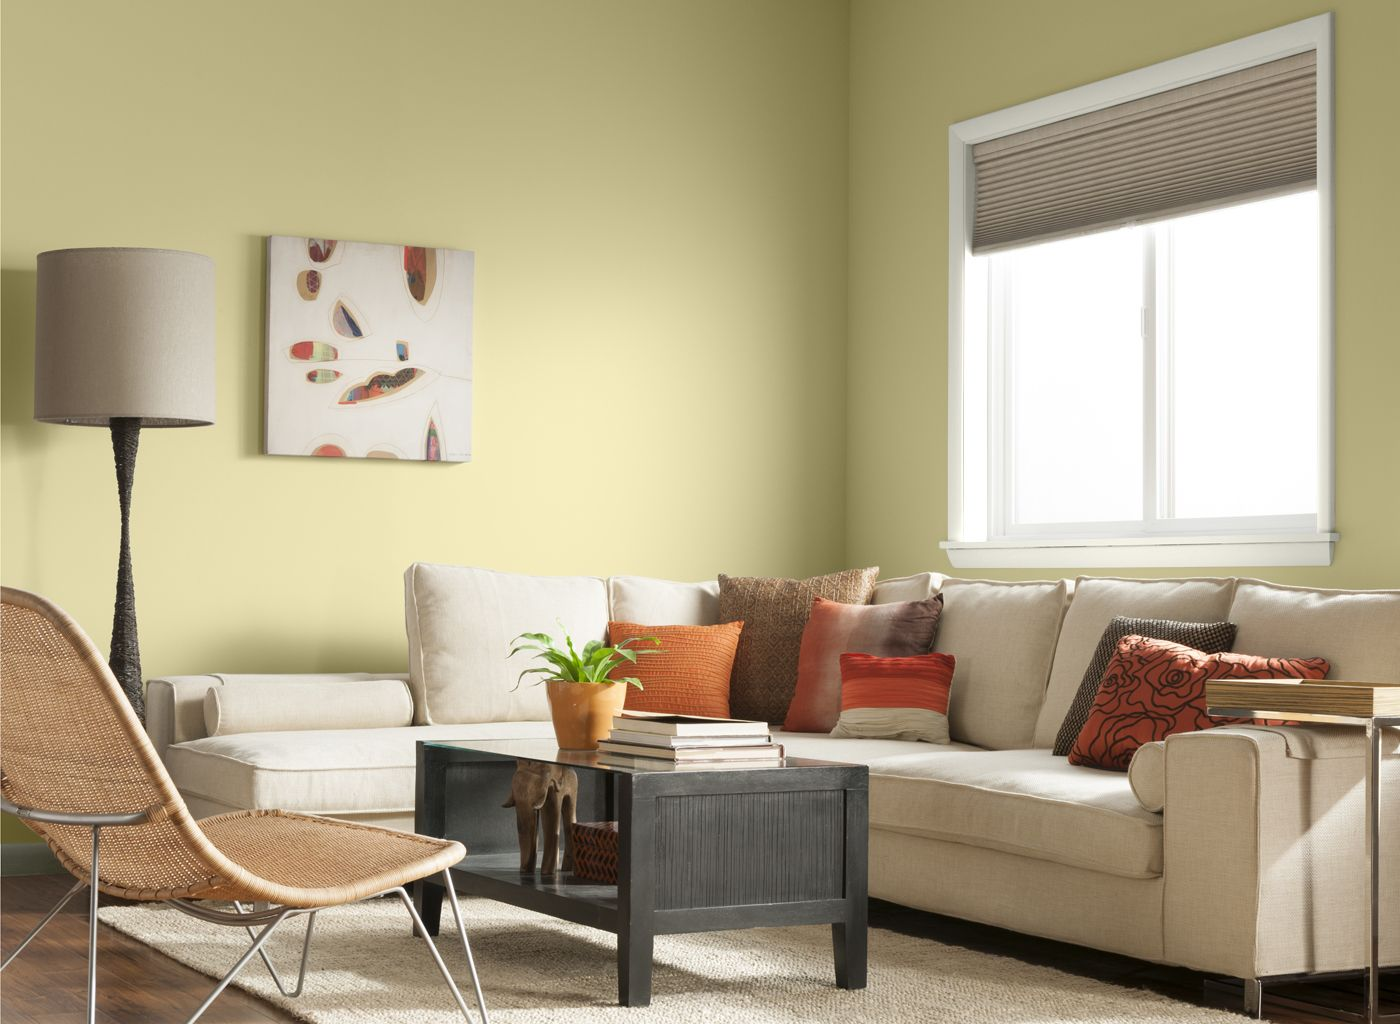 living room in daisy yellow living room wall color on home interior colors living room id=74876